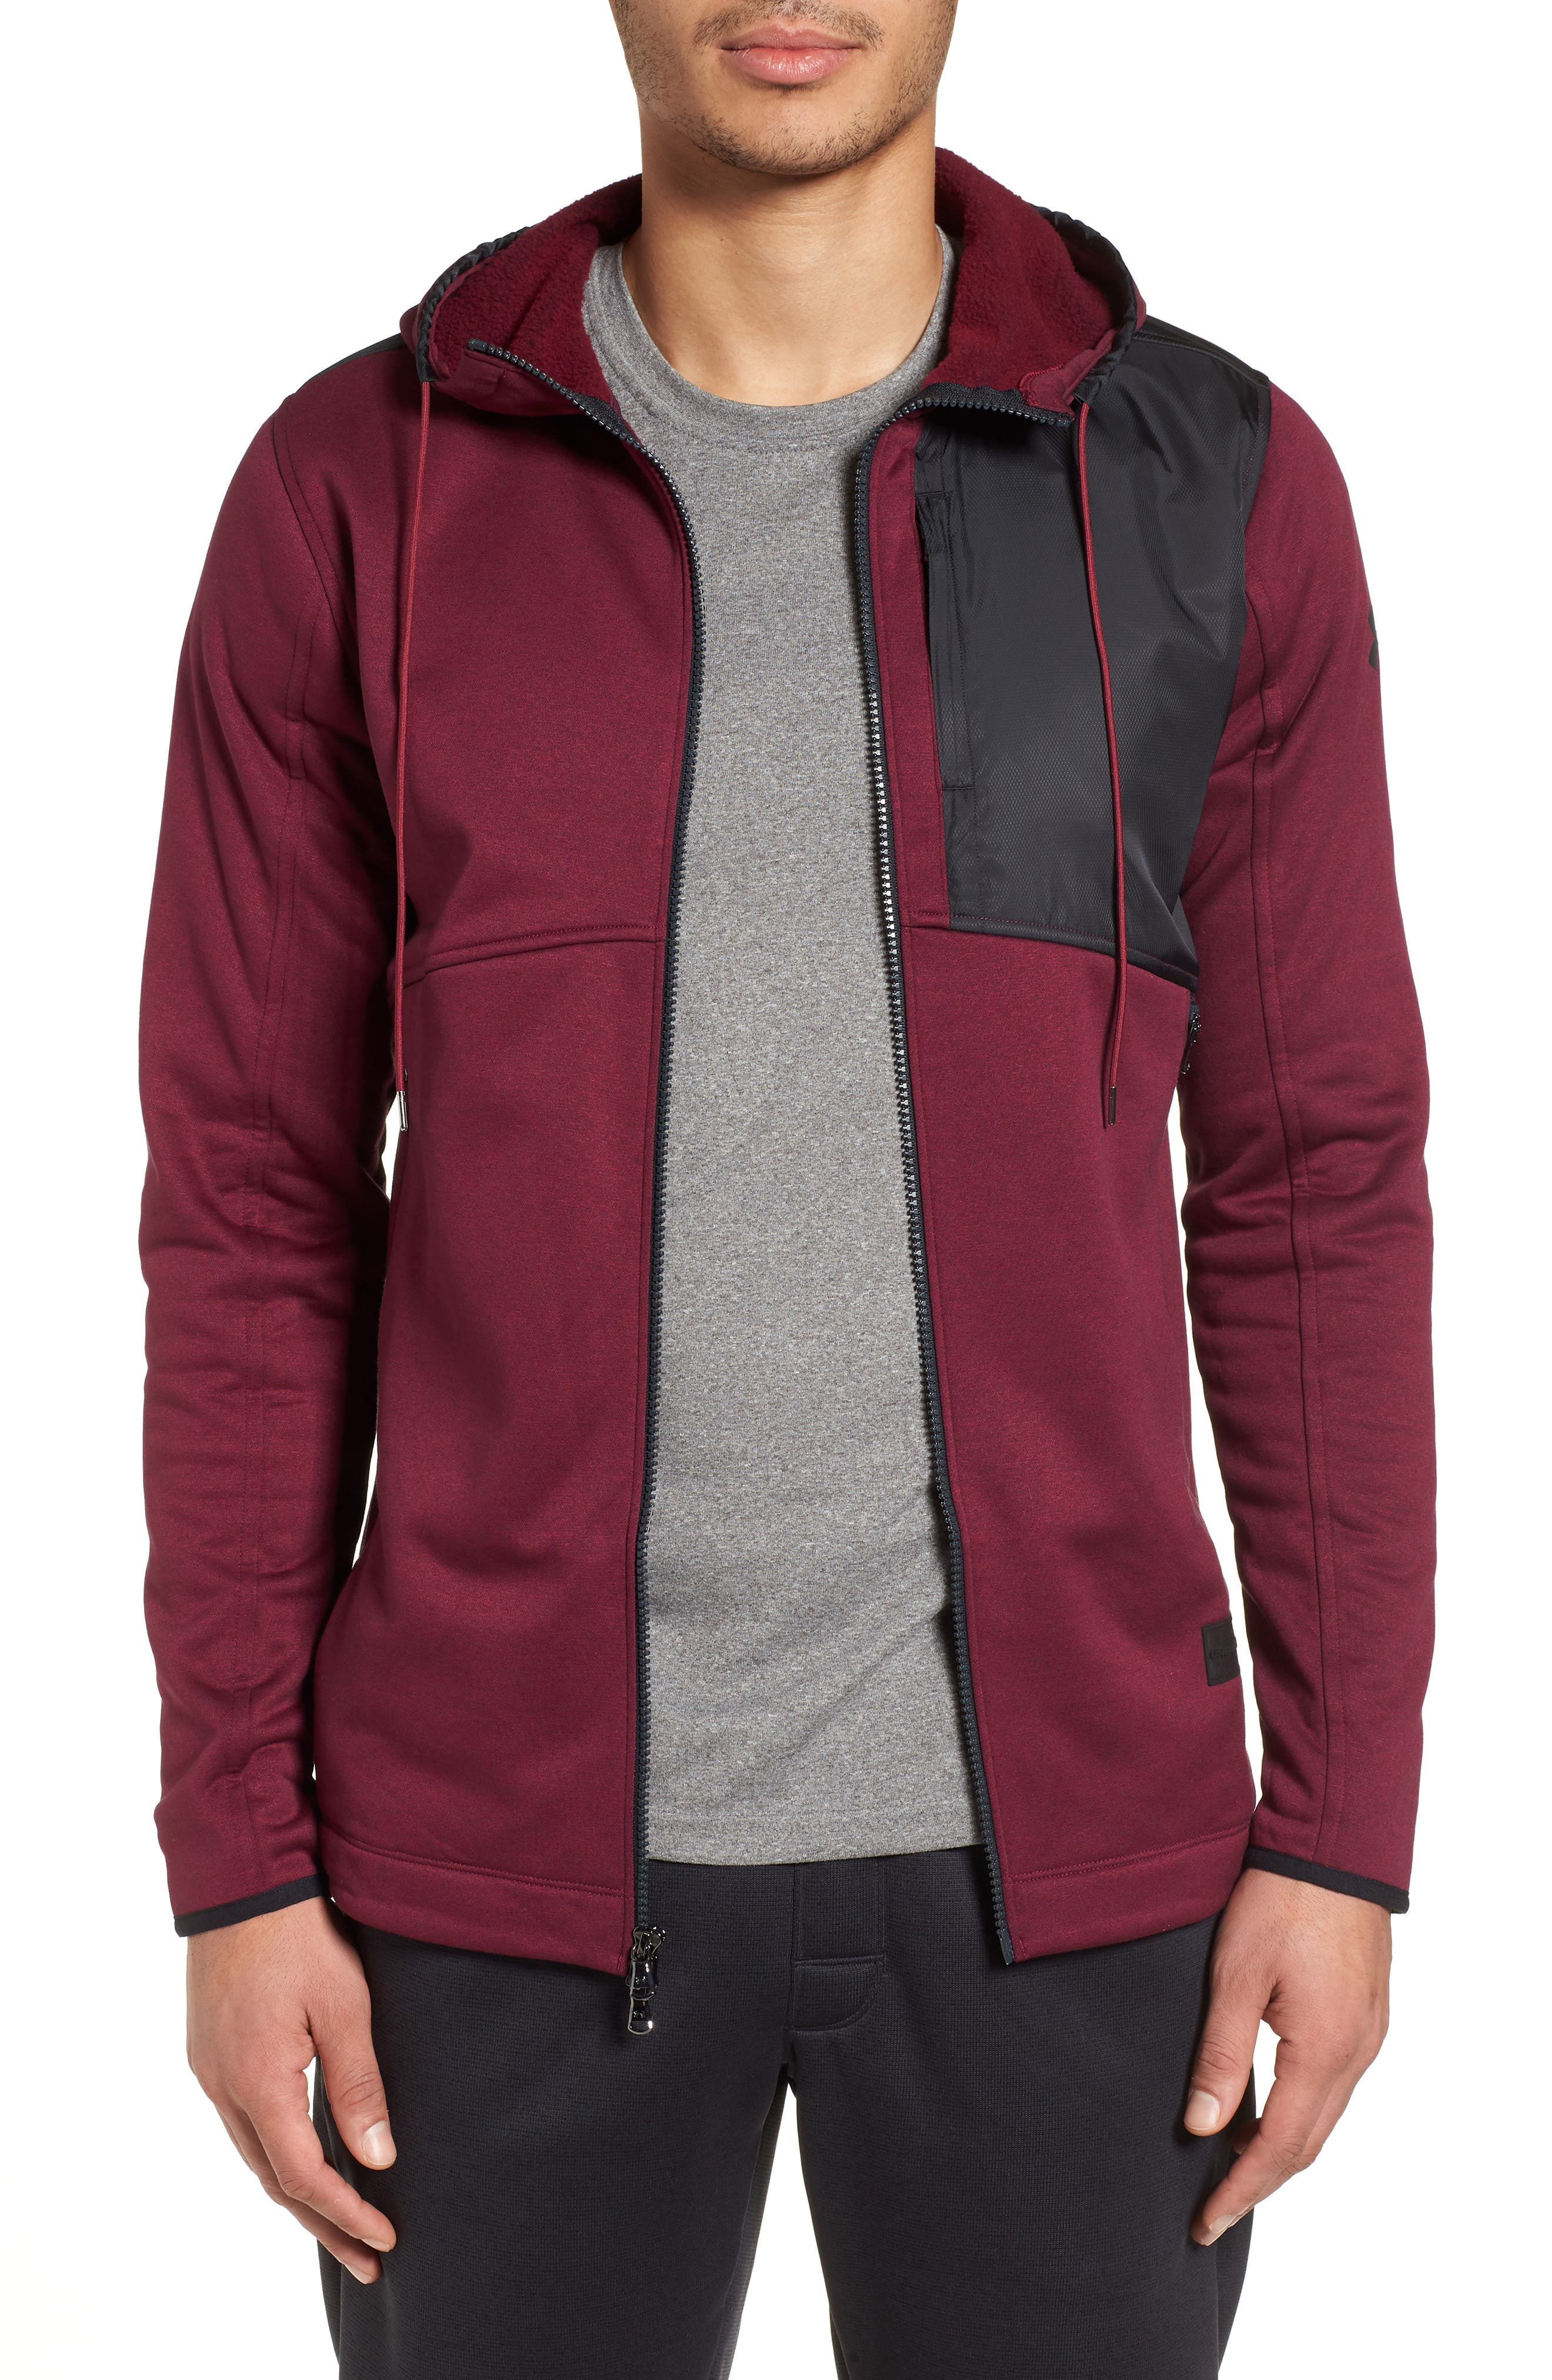 Courtside Stealth Zip Hoodie,                             Main thumbnail 1, color,                             Black Currant / Black